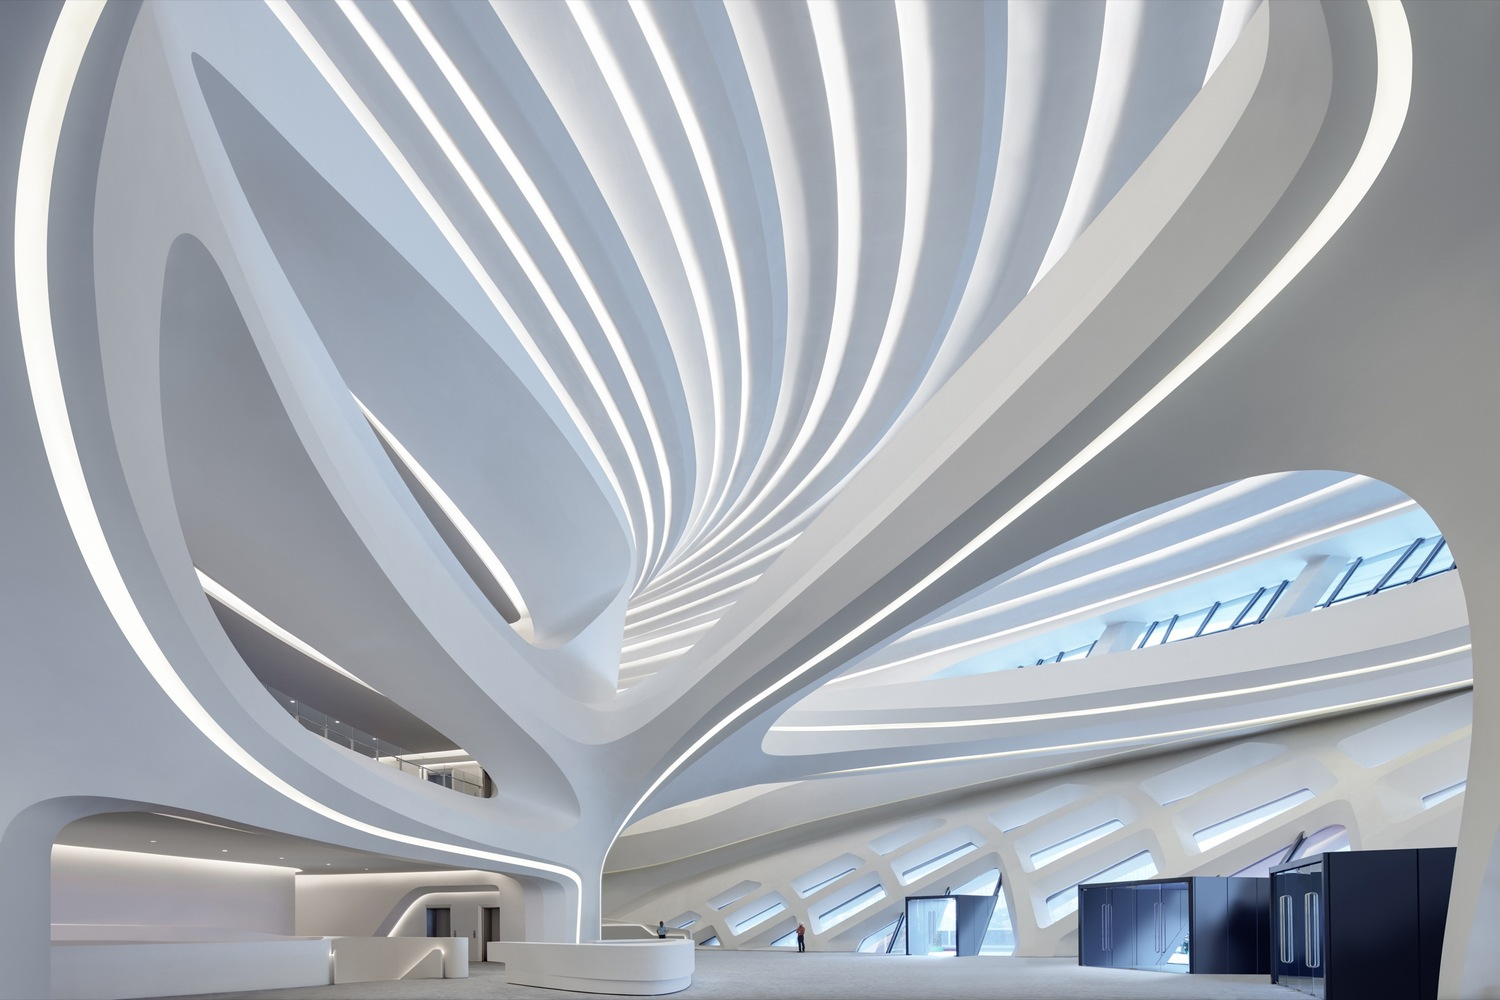 3_Changsha Meixihu International Culture and Art Centre_Zaha Hadid Architects_Inspirationist